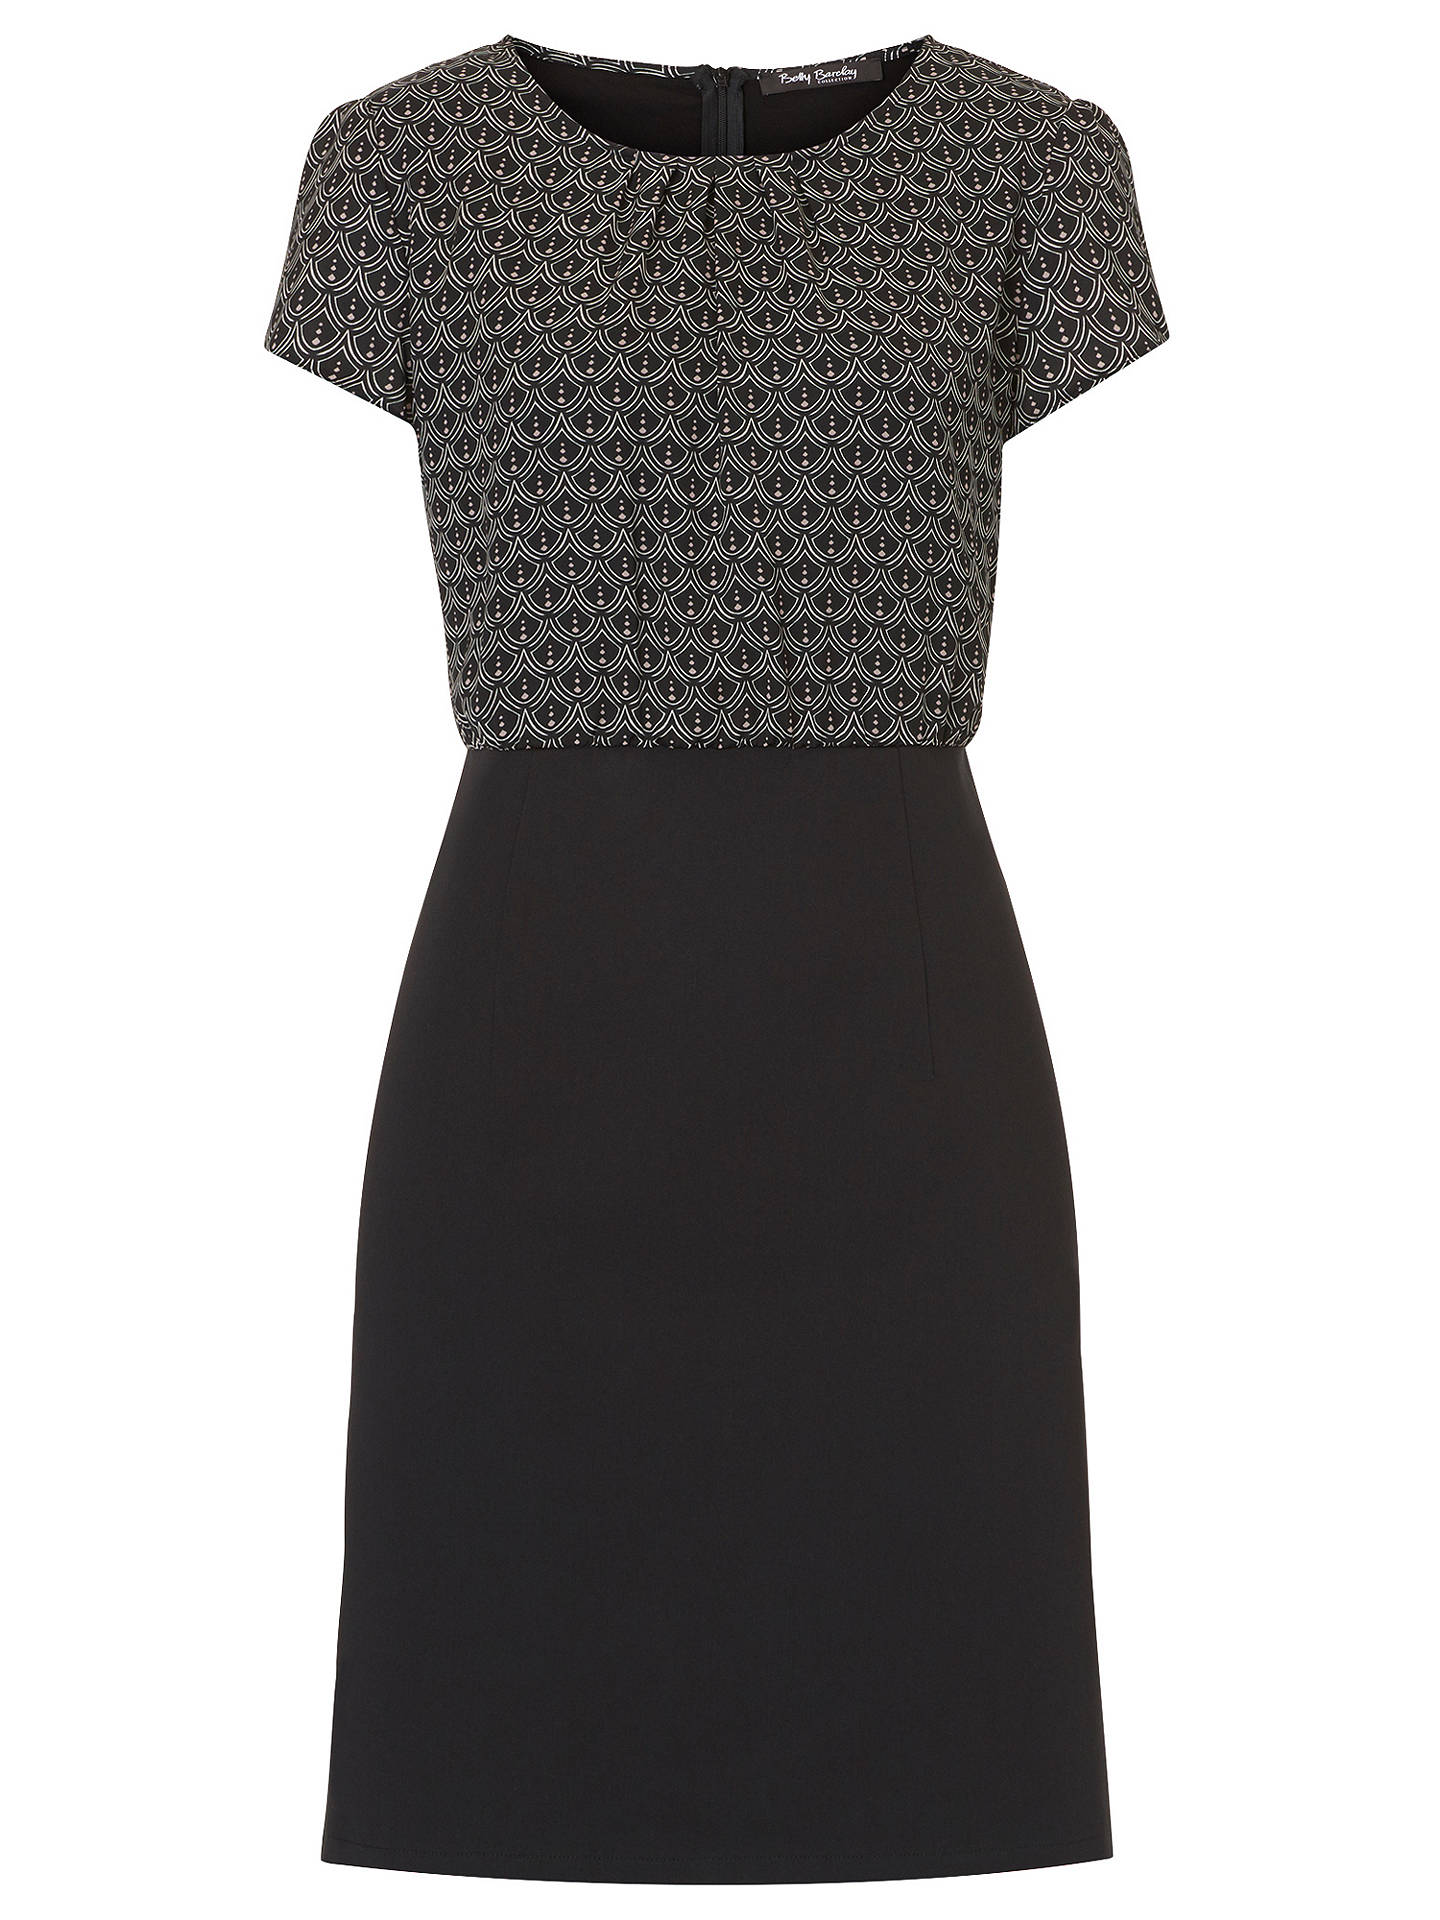 Buy Betty Barclay Print And Plain Dress, Black/White, 8 Online at johnlewis.com